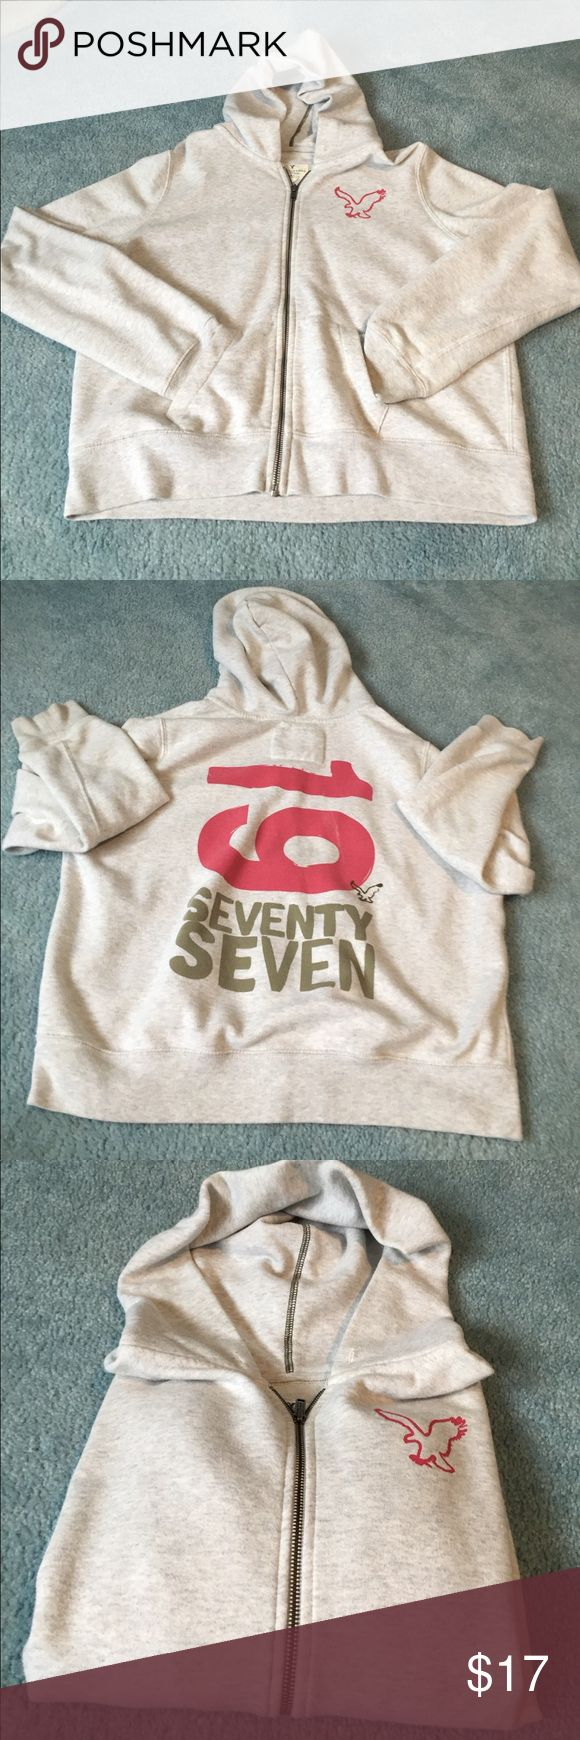 """American Eagle🦅 hoodie American Eagle🦅 light gray zip up hoodie. Front has a pink eagle on top left. Back says 19 in pink and in gold says """"seventy seven"""" with a black eagle. 54% cotton, 46% polyester. ‼️I accept almost all offers💜‼️ American Eagle Outfitters Tops Sweatshirts & Hoodies"""